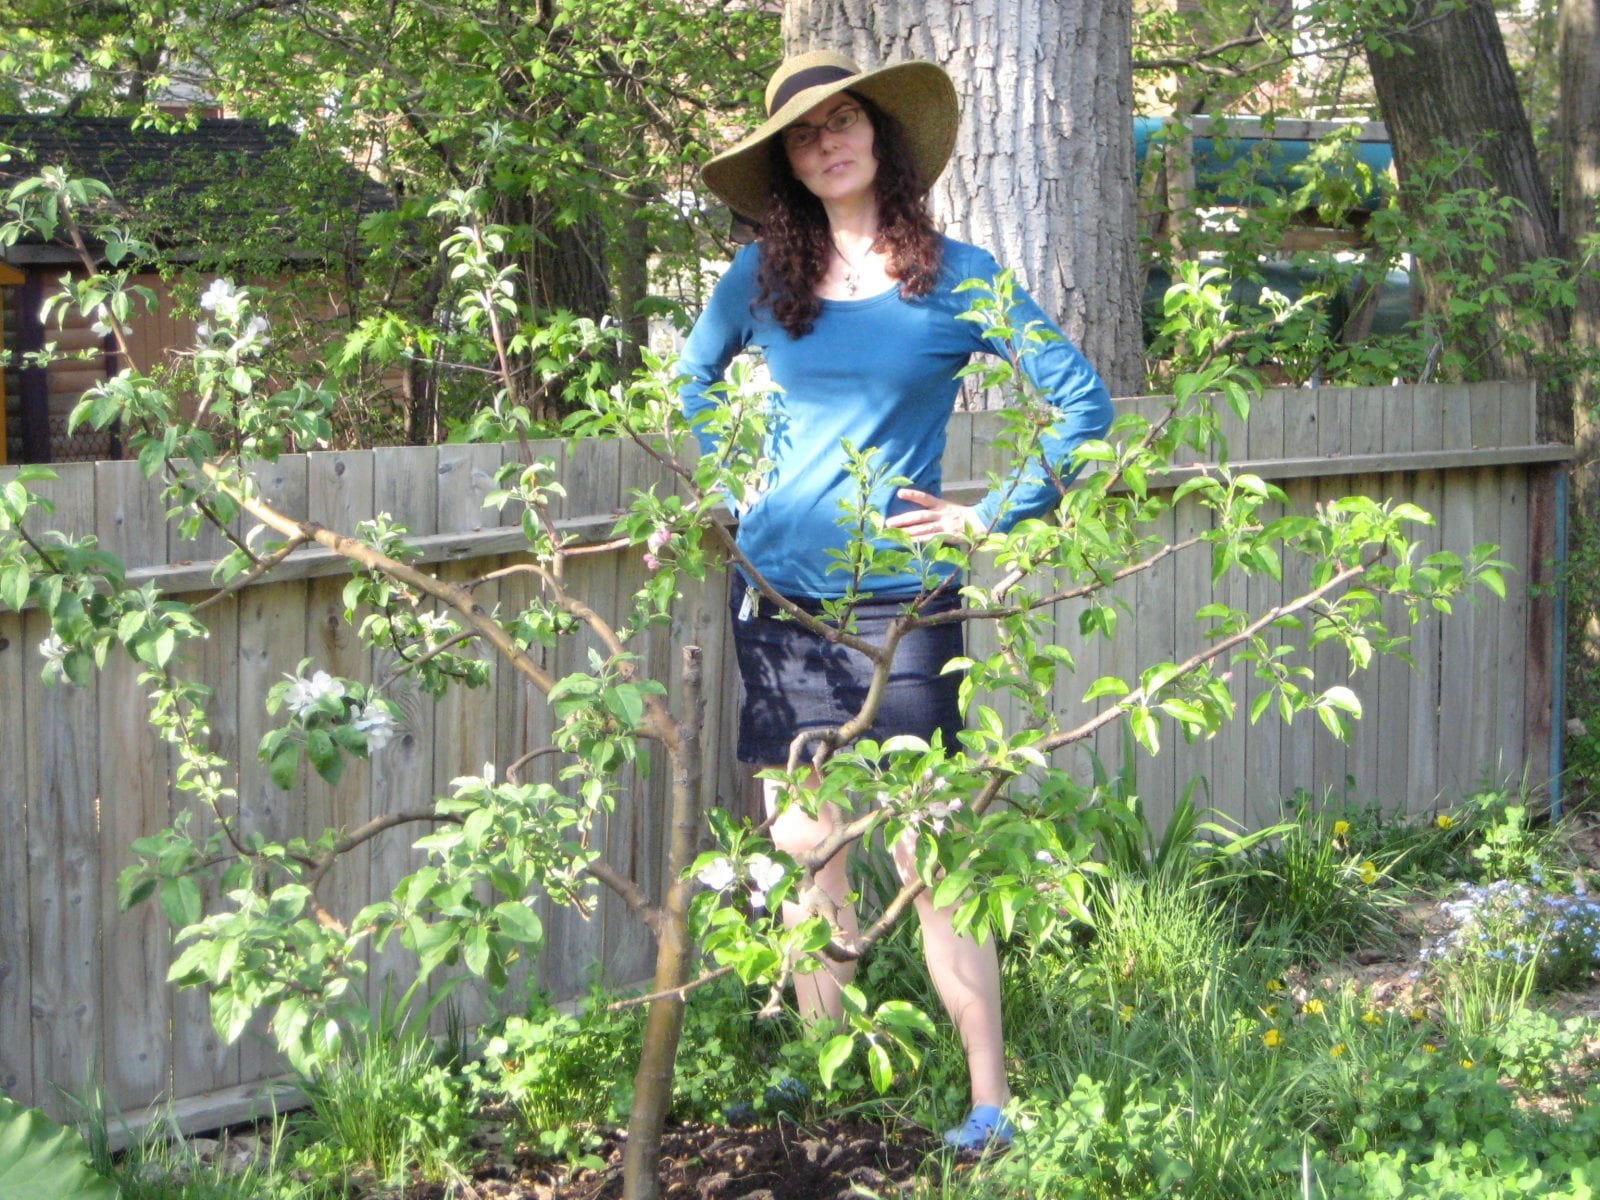 Using grafting techniques, breeders have developed many types of dwarfing apple trees that grow just 6 or 8 feet tall.